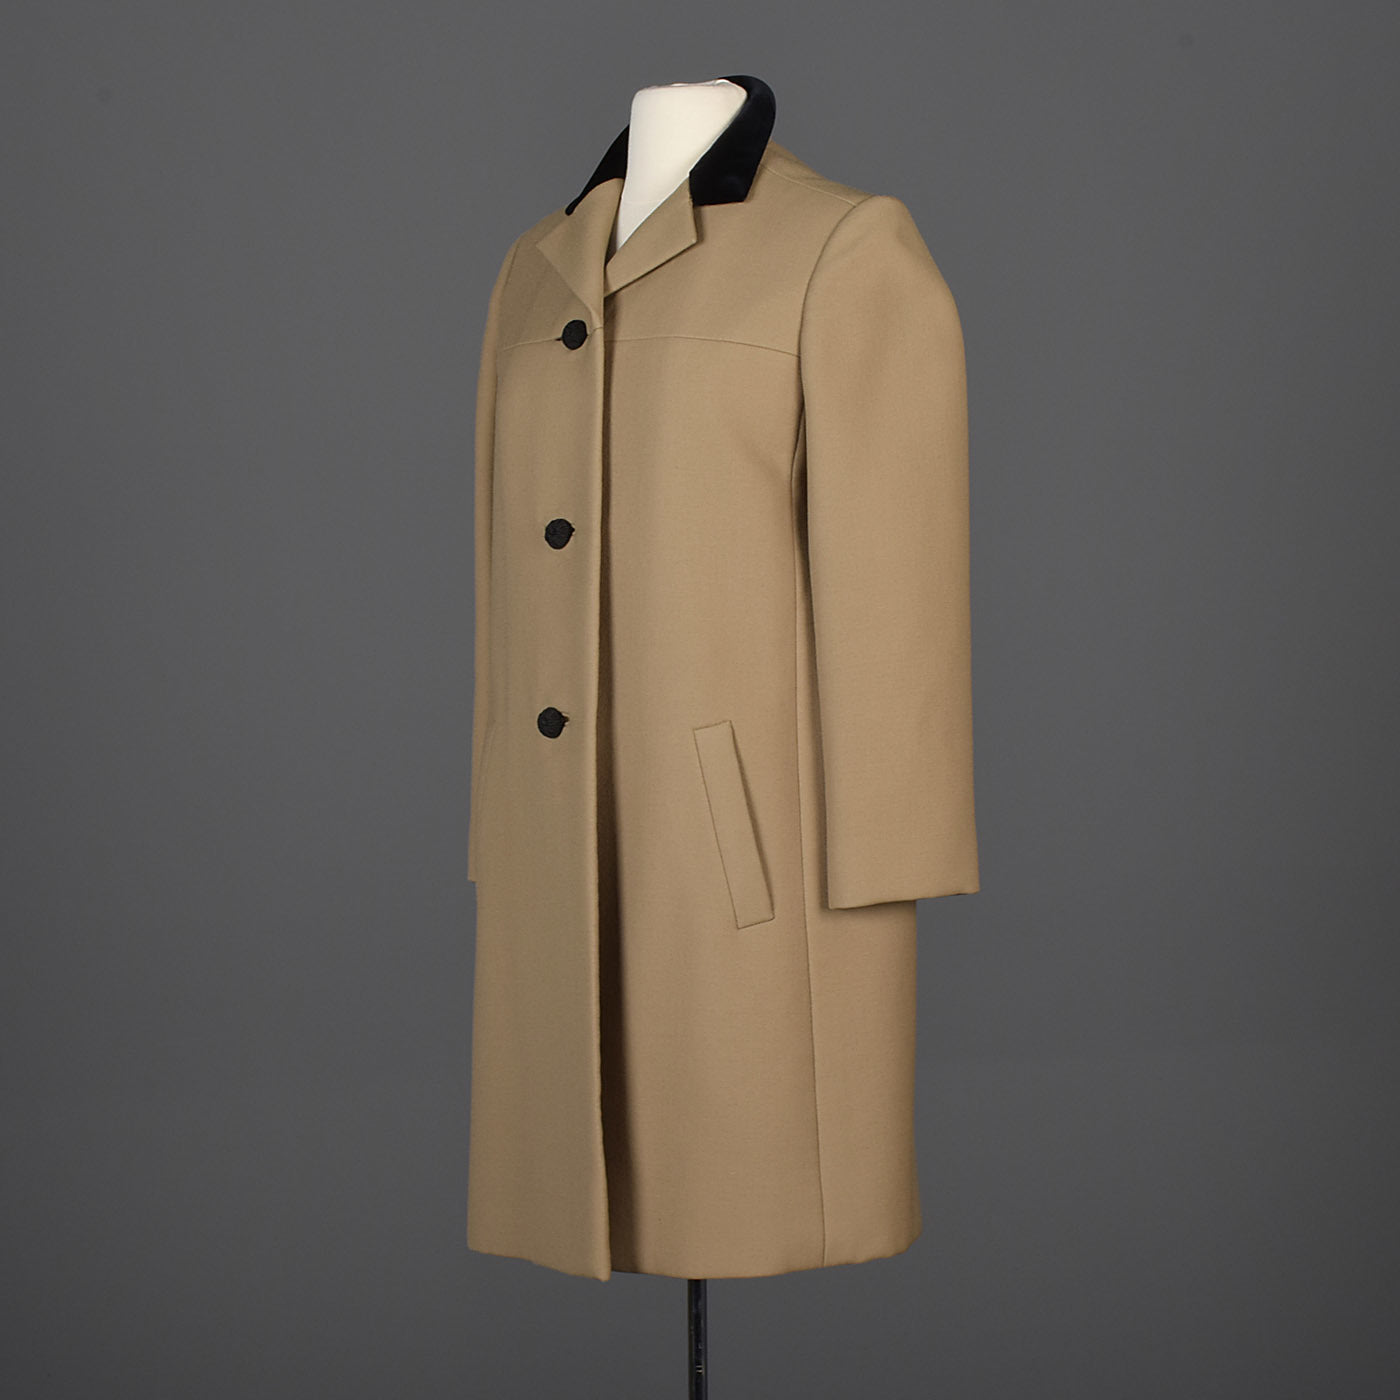 Classic George Halley Winter Coat with Velvet Collar